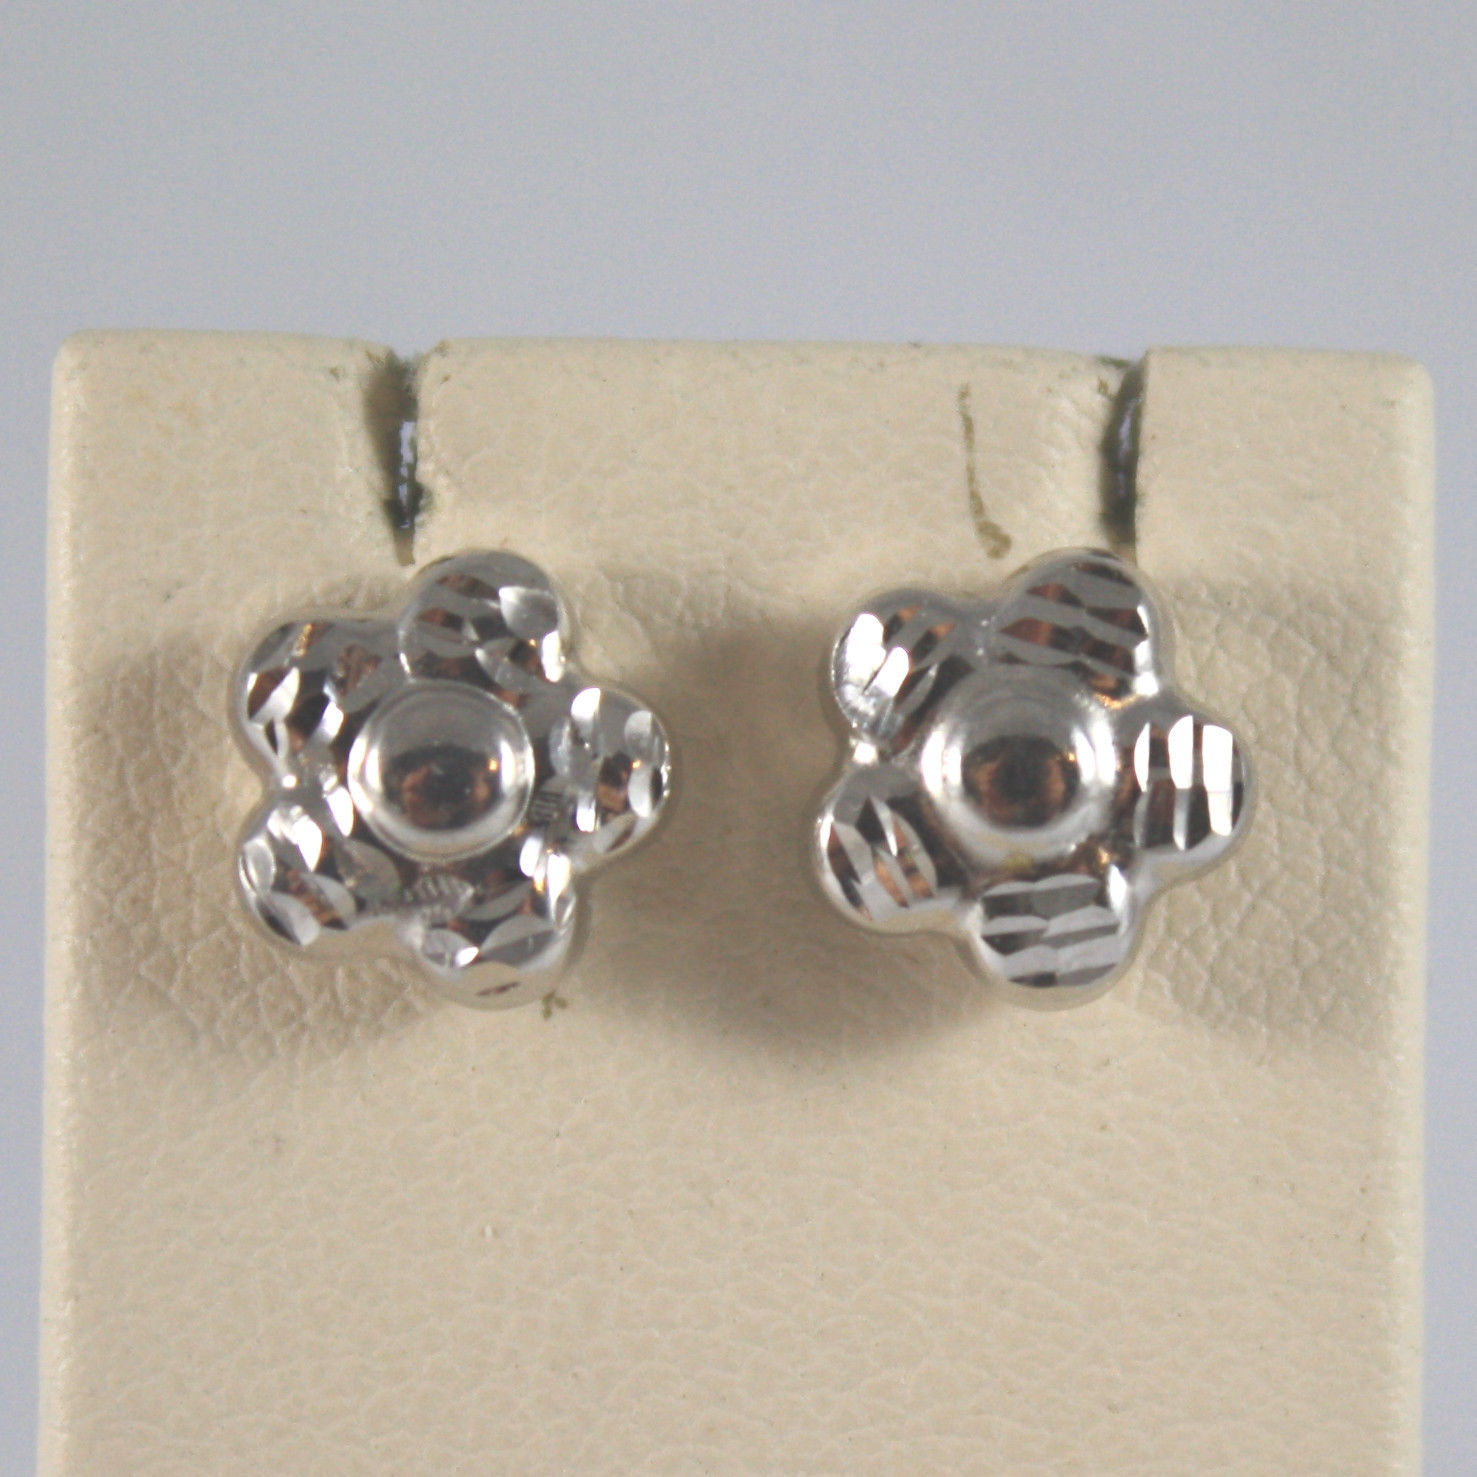 SOLID 18K WHITE GOLD EARRINGS, WITH HAMMERED FLOWERS, MADE IN ITALY